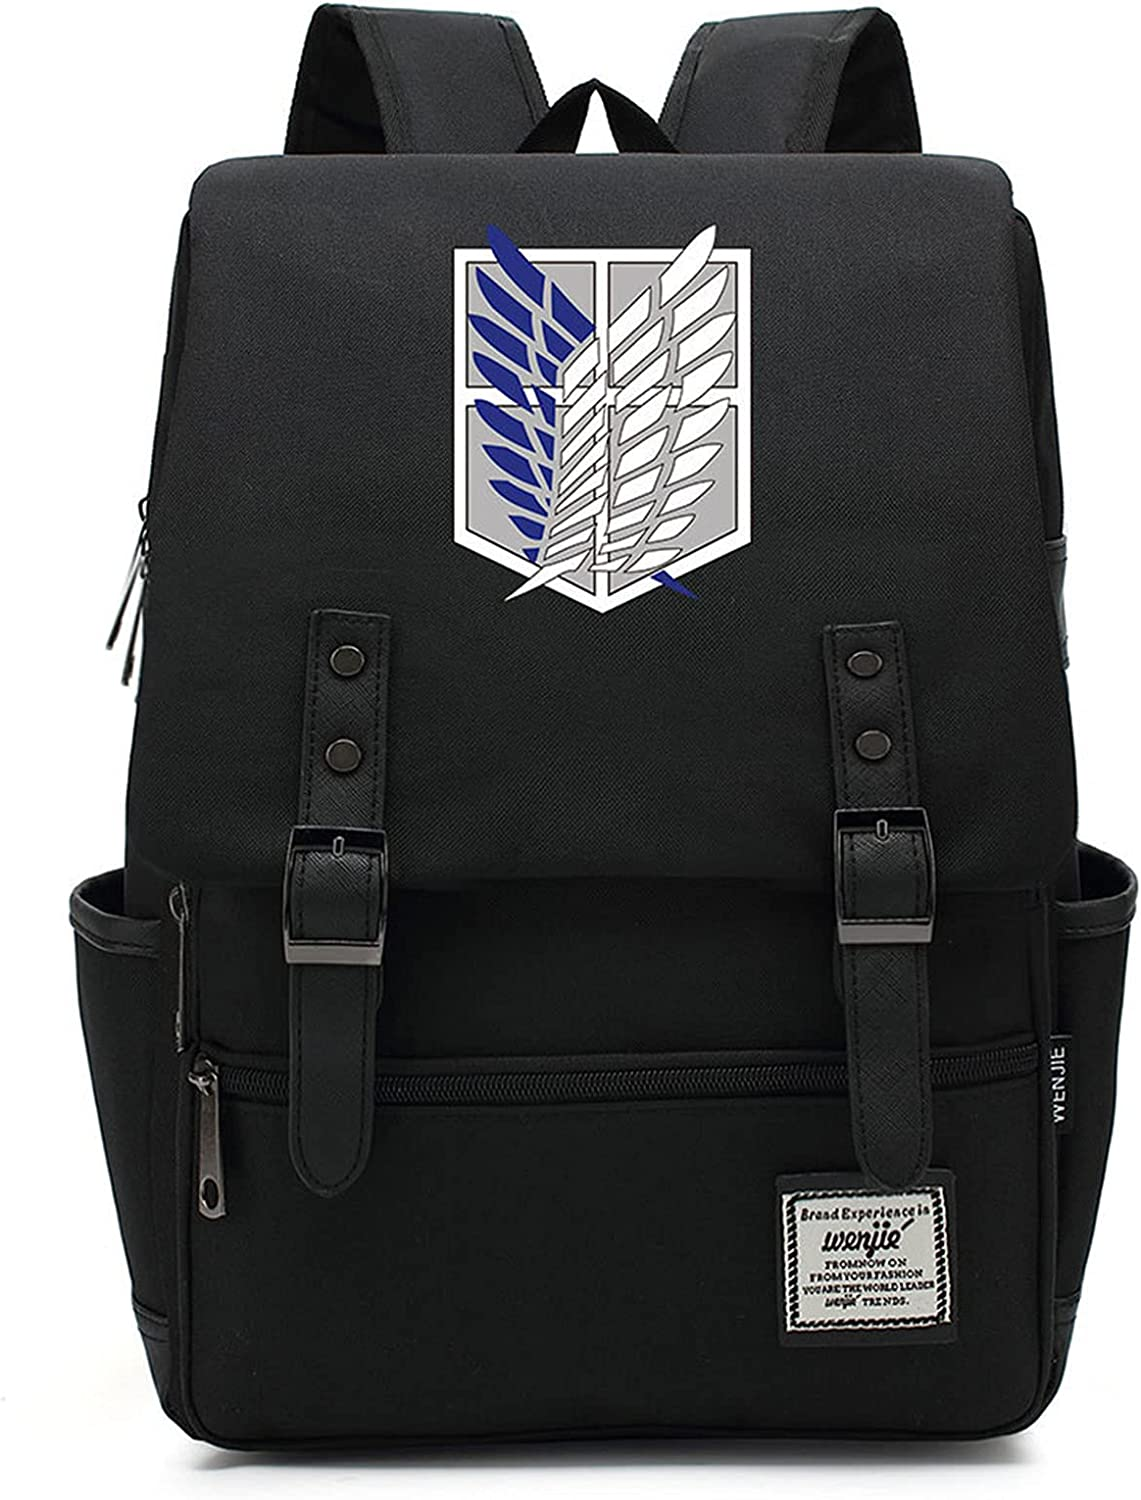 Attack On Titan Backpack-Kids School Limited time trial price Max 44% OFF Backpack Sports Bag Travel